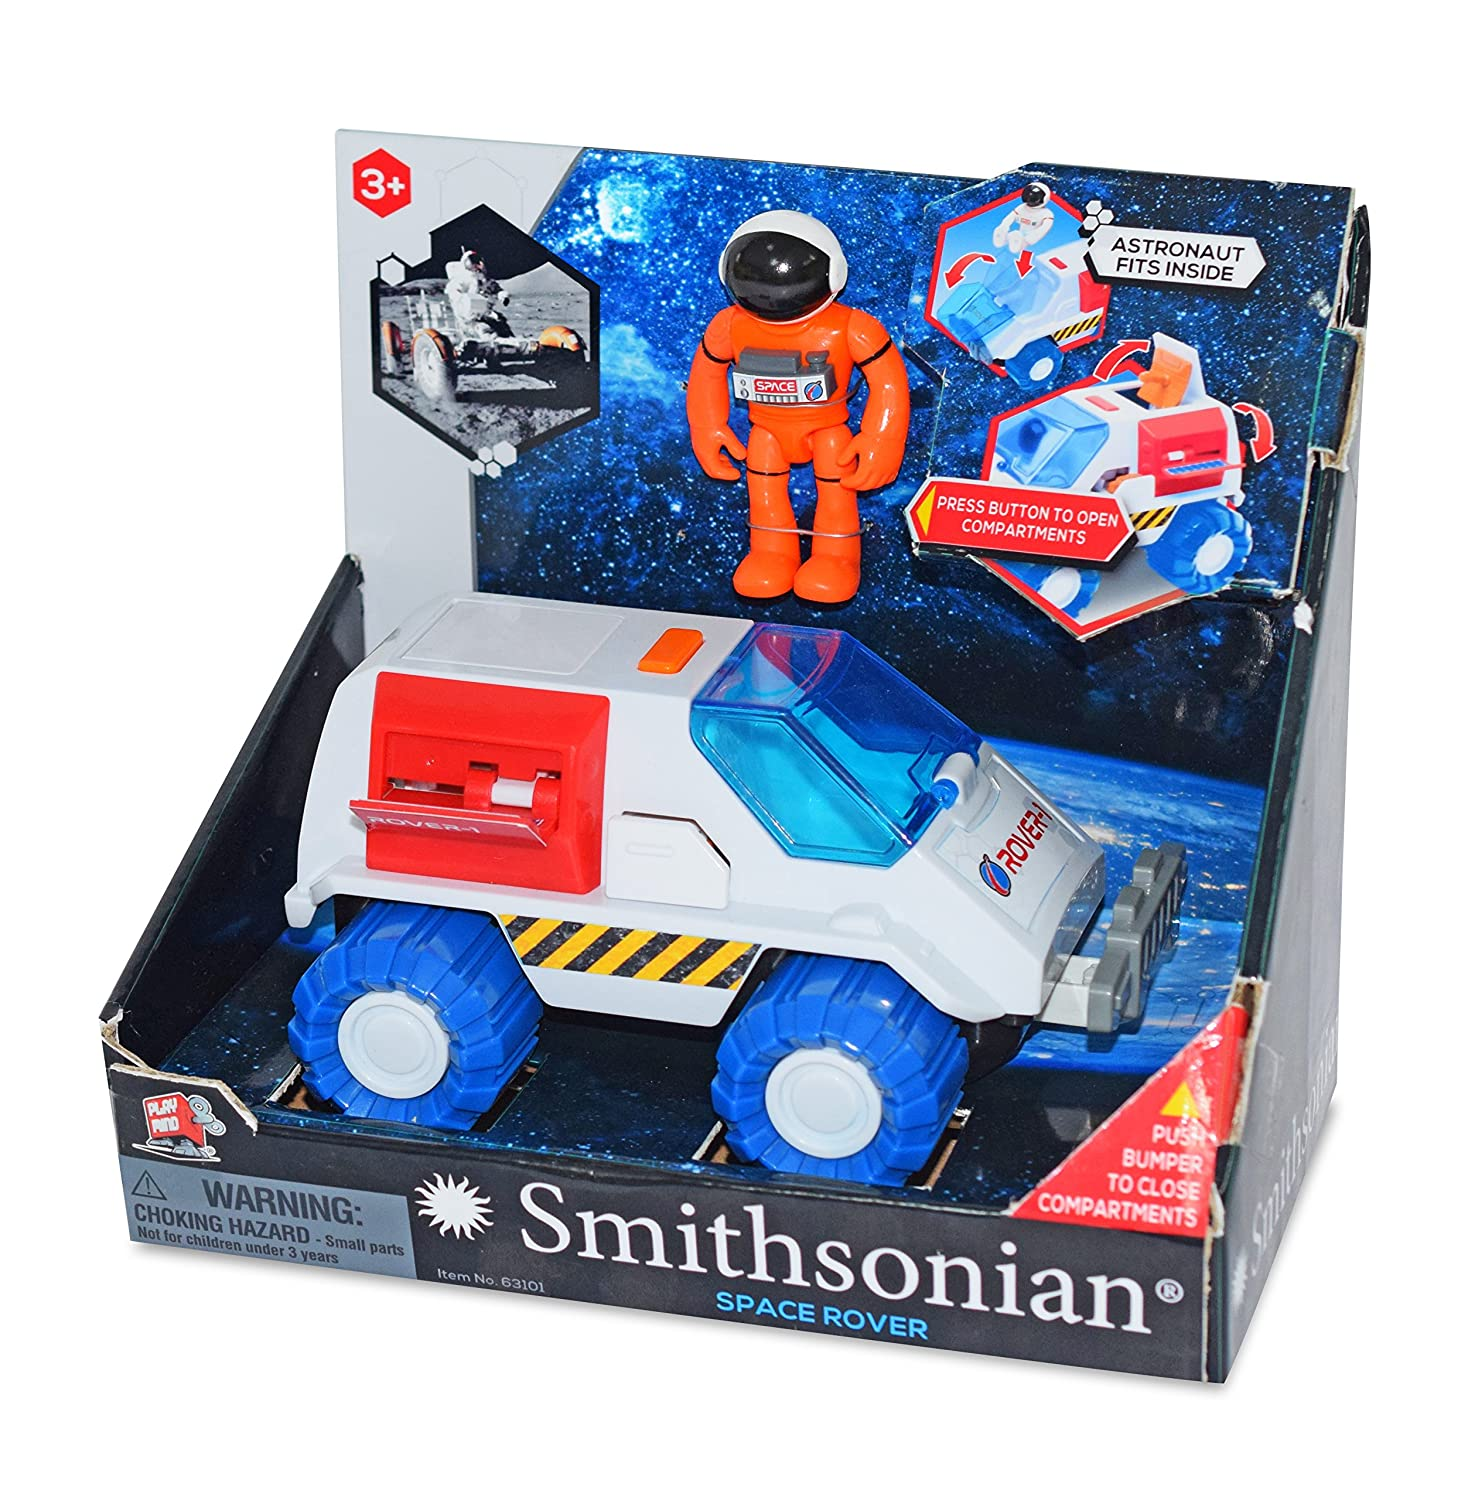 dba National Products Ltd 63101MB Smithsonian Space Rover Fun Creation Inc Drop Ship Ordering Code